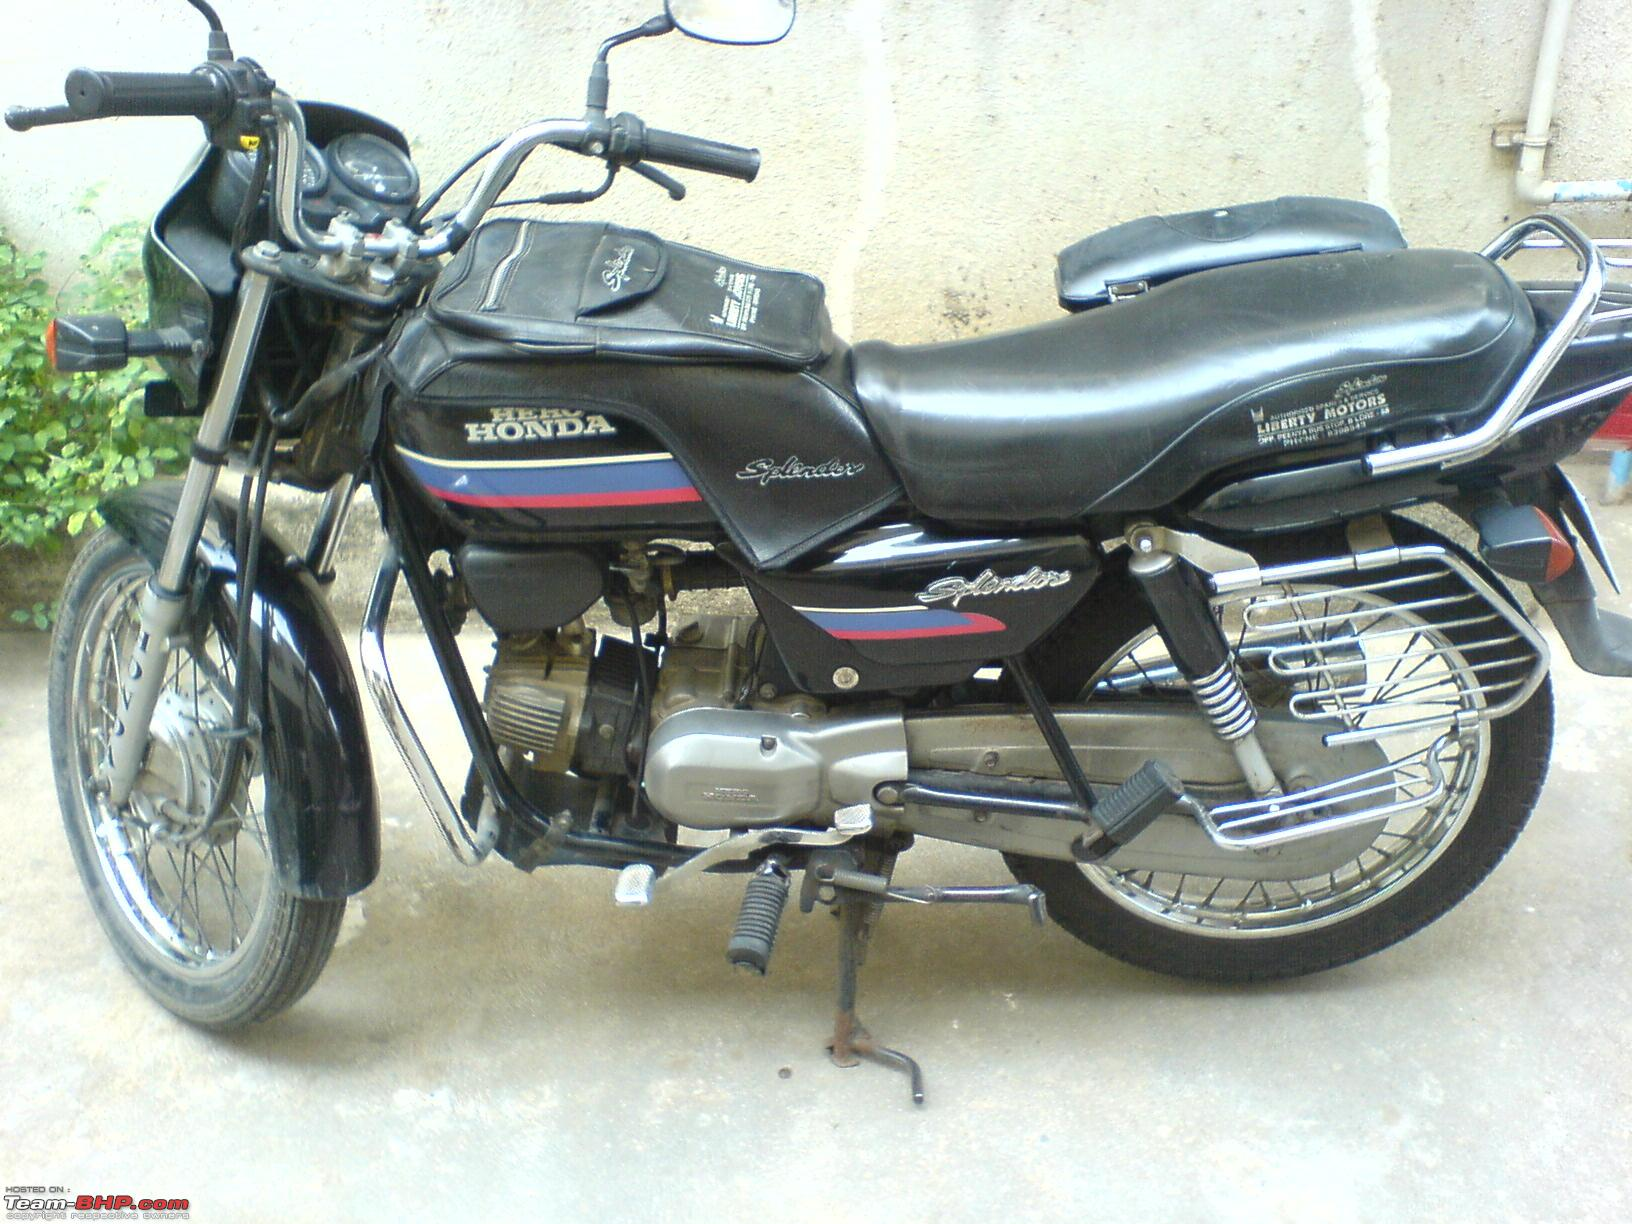 Hero Honda Splendor 2007 images #95888